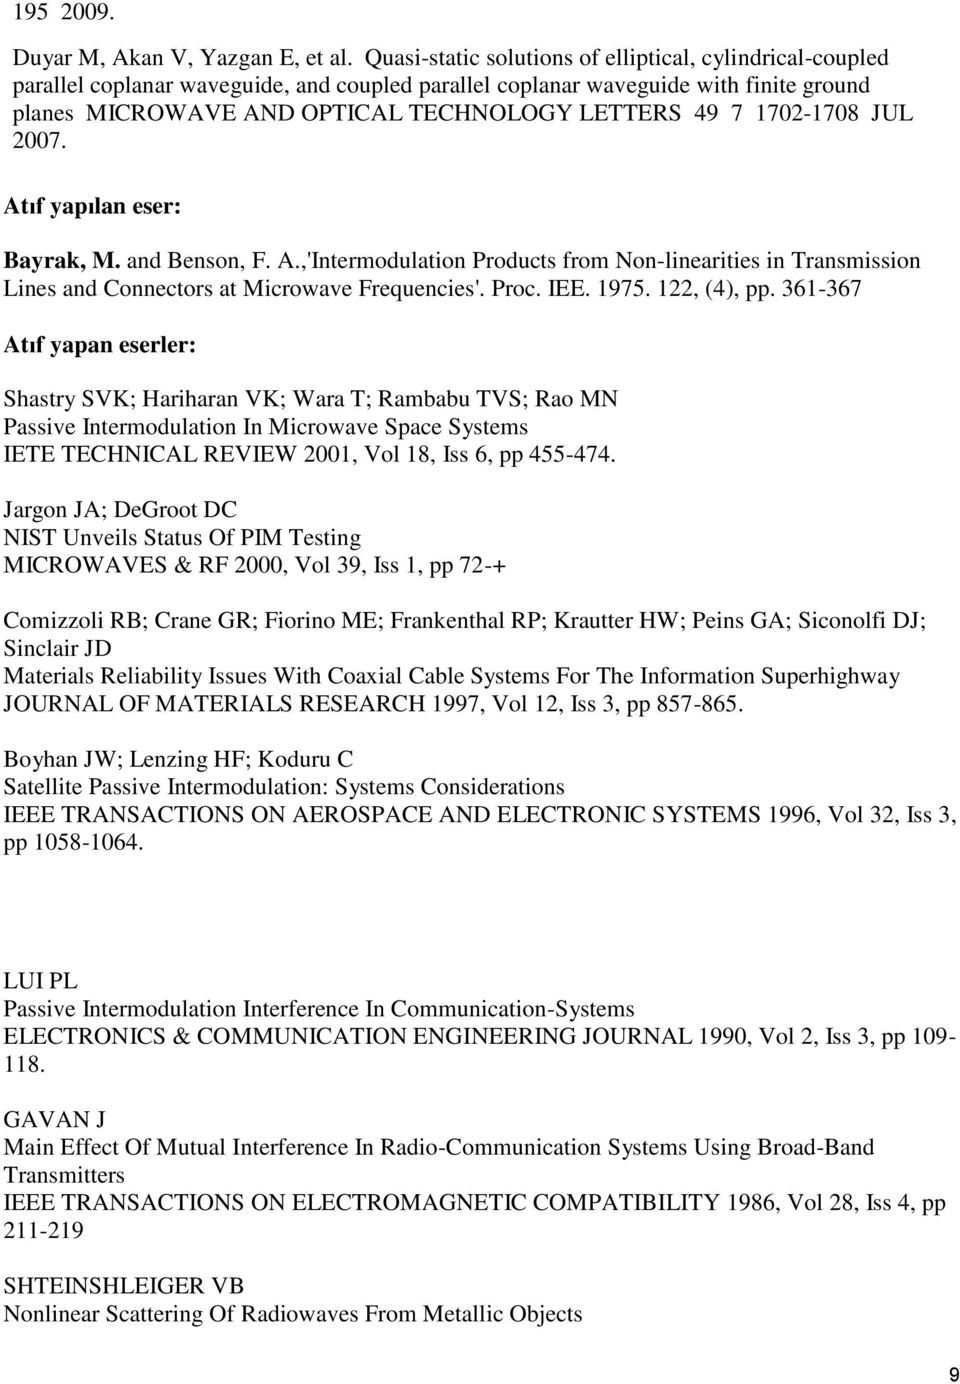 1702-1708 JUL 2007. Atıf yapılan eser: Bayrak, M. and Benson, F. A.,'Intermodulation Products from Non-linearities in Transmission Lines and Connectors at Microwave Frequencies'. Proc. IEE. 1975.